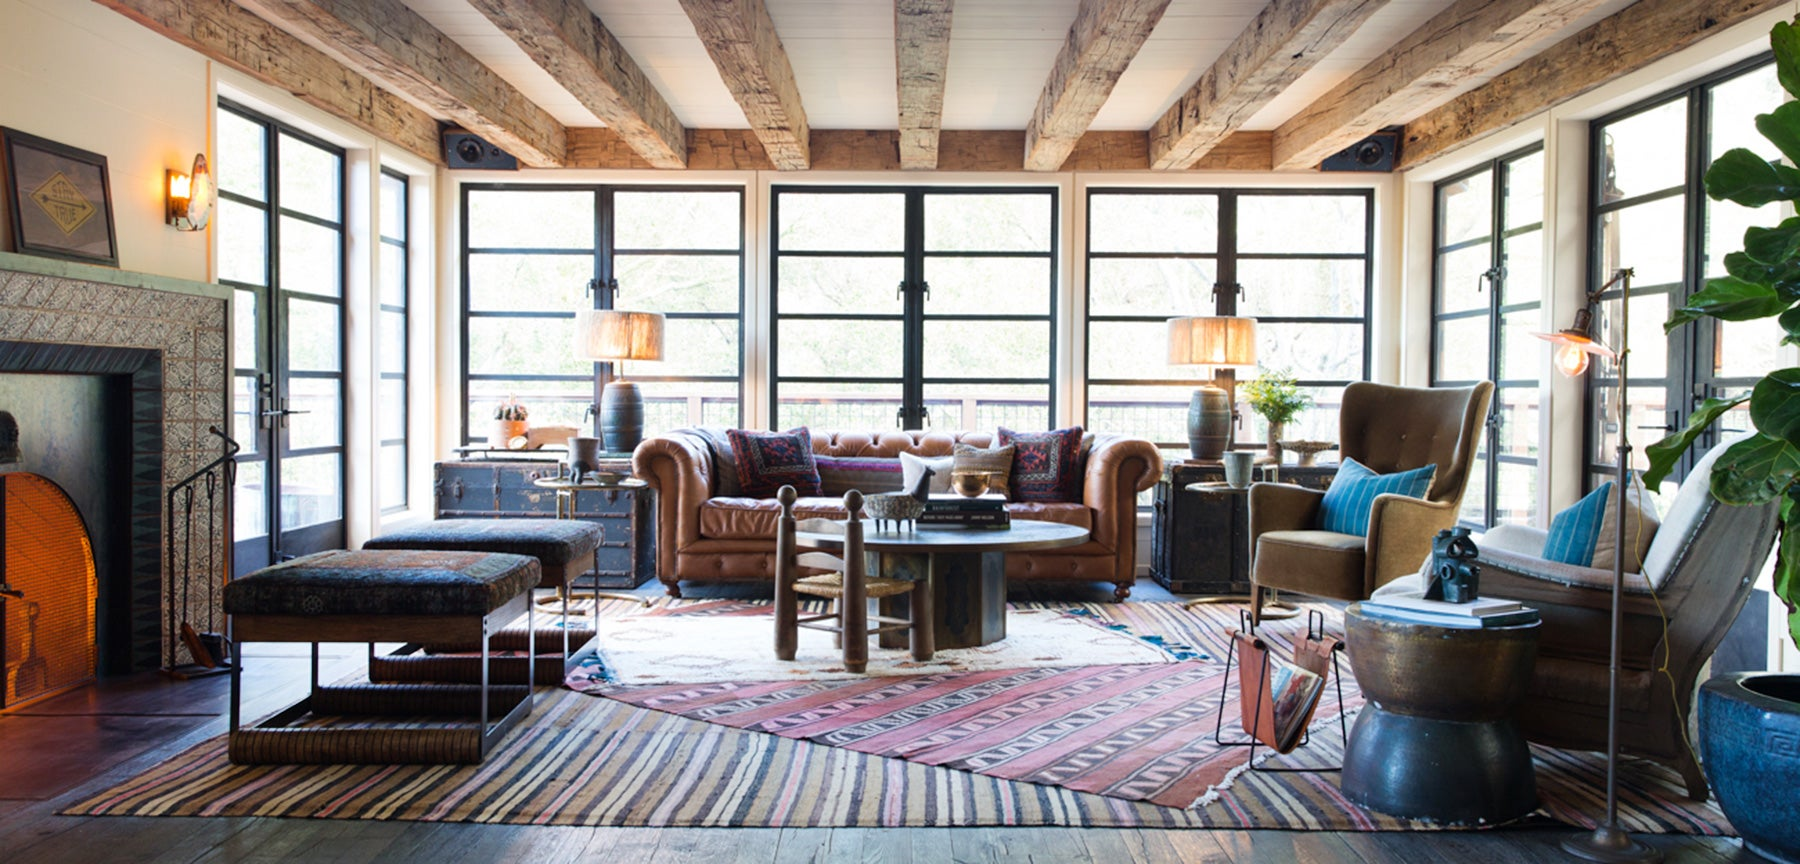 Blake Myscoskie living room by Hammer and Spear